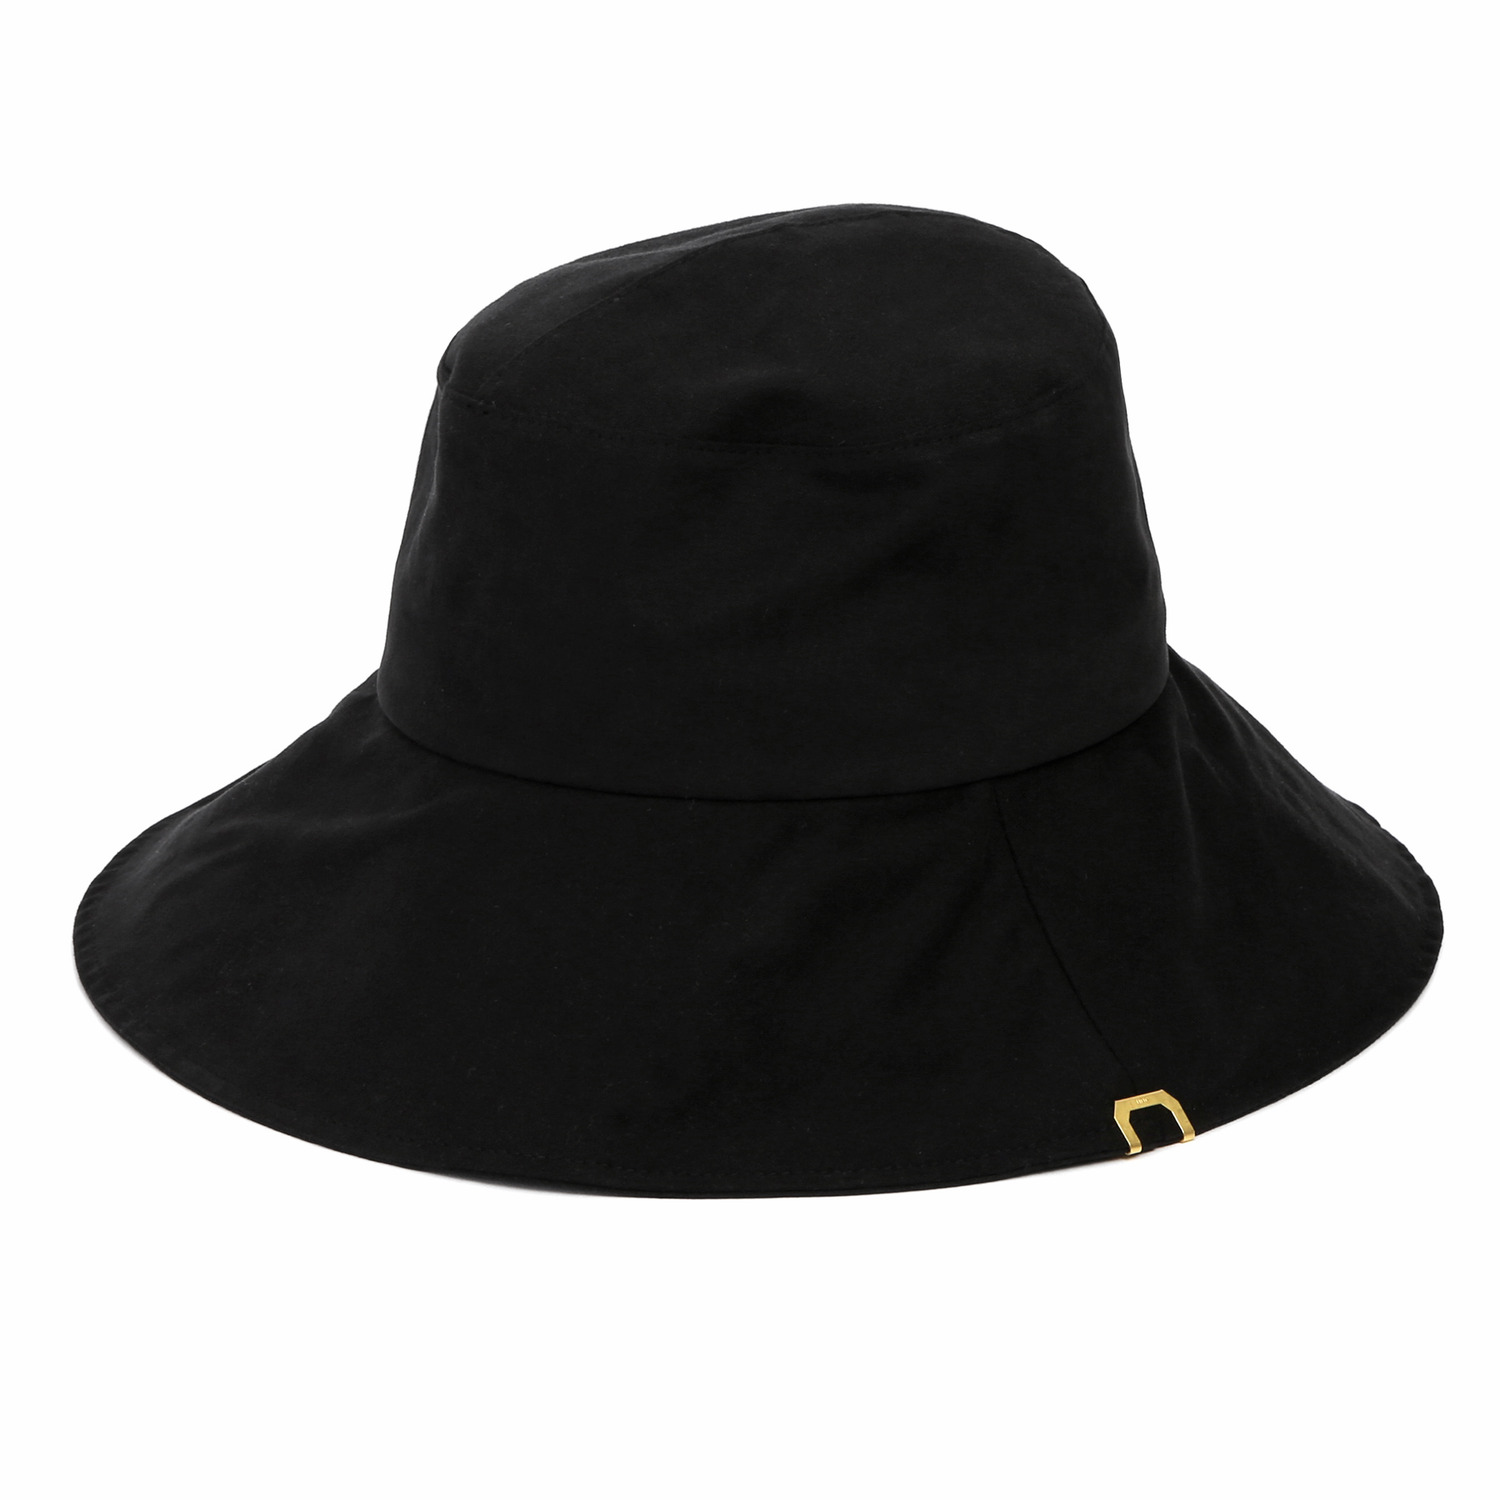 UMBRELLA HAT / BIO / BRUSH BLACK